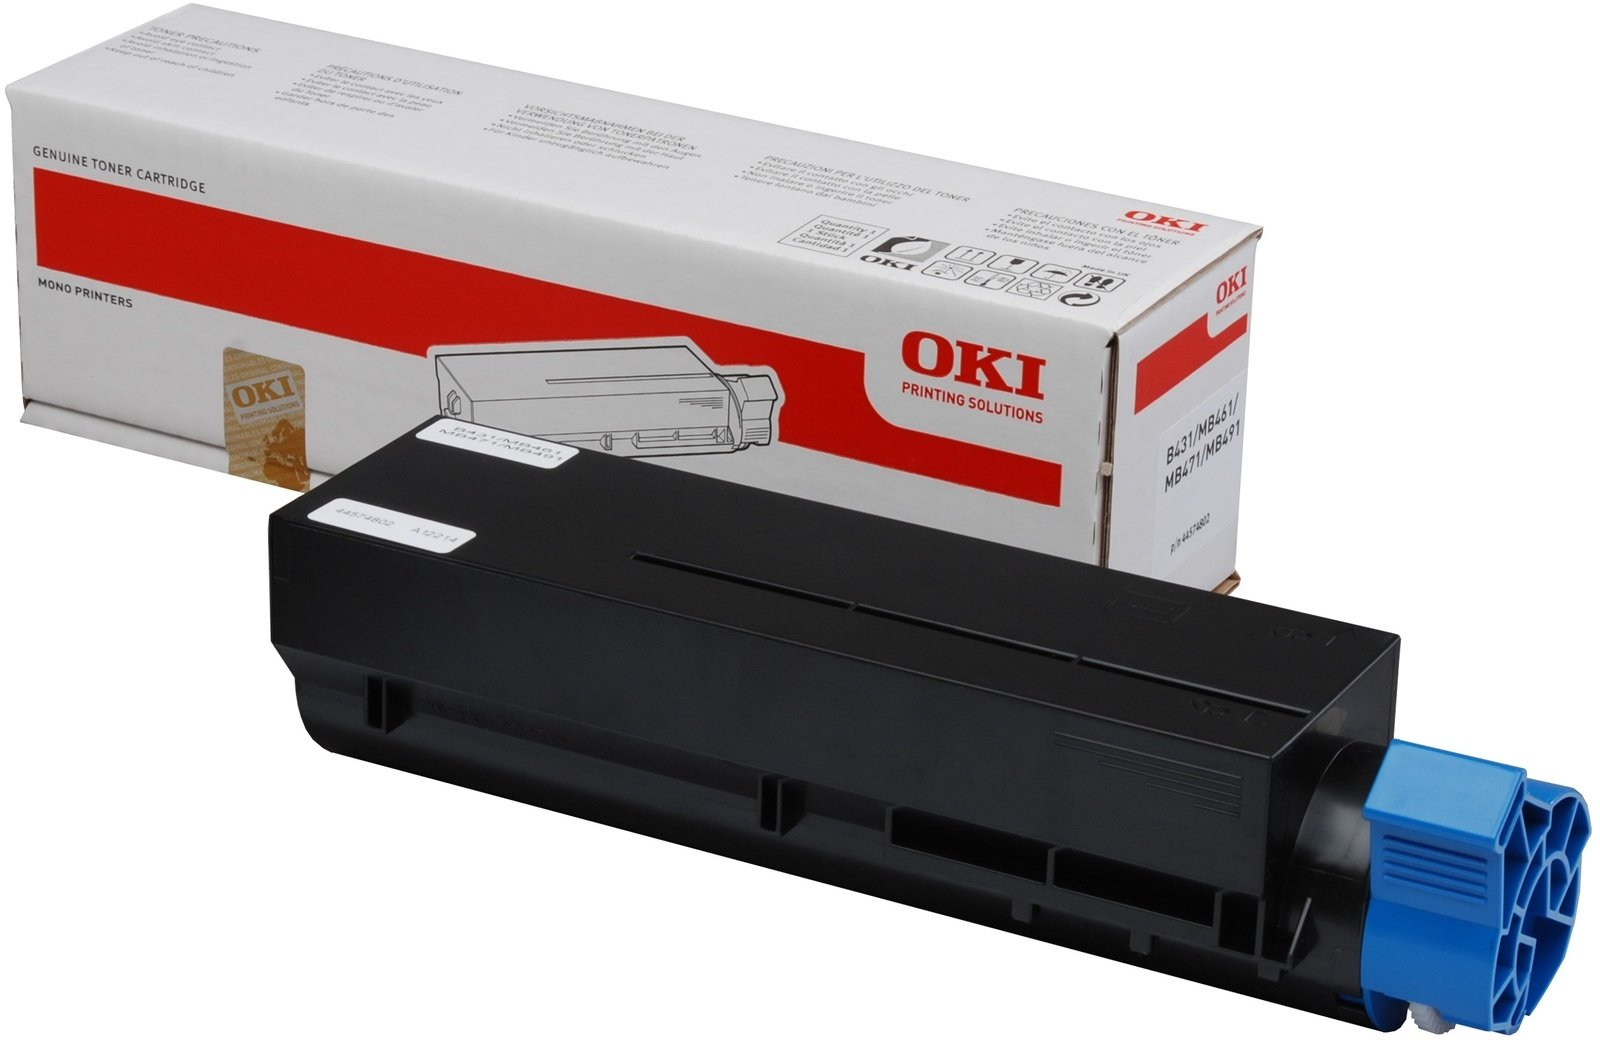 Genuine Black OKI 44574802 Toner Cartridge - (44574802 Laser Printer Cartridge)